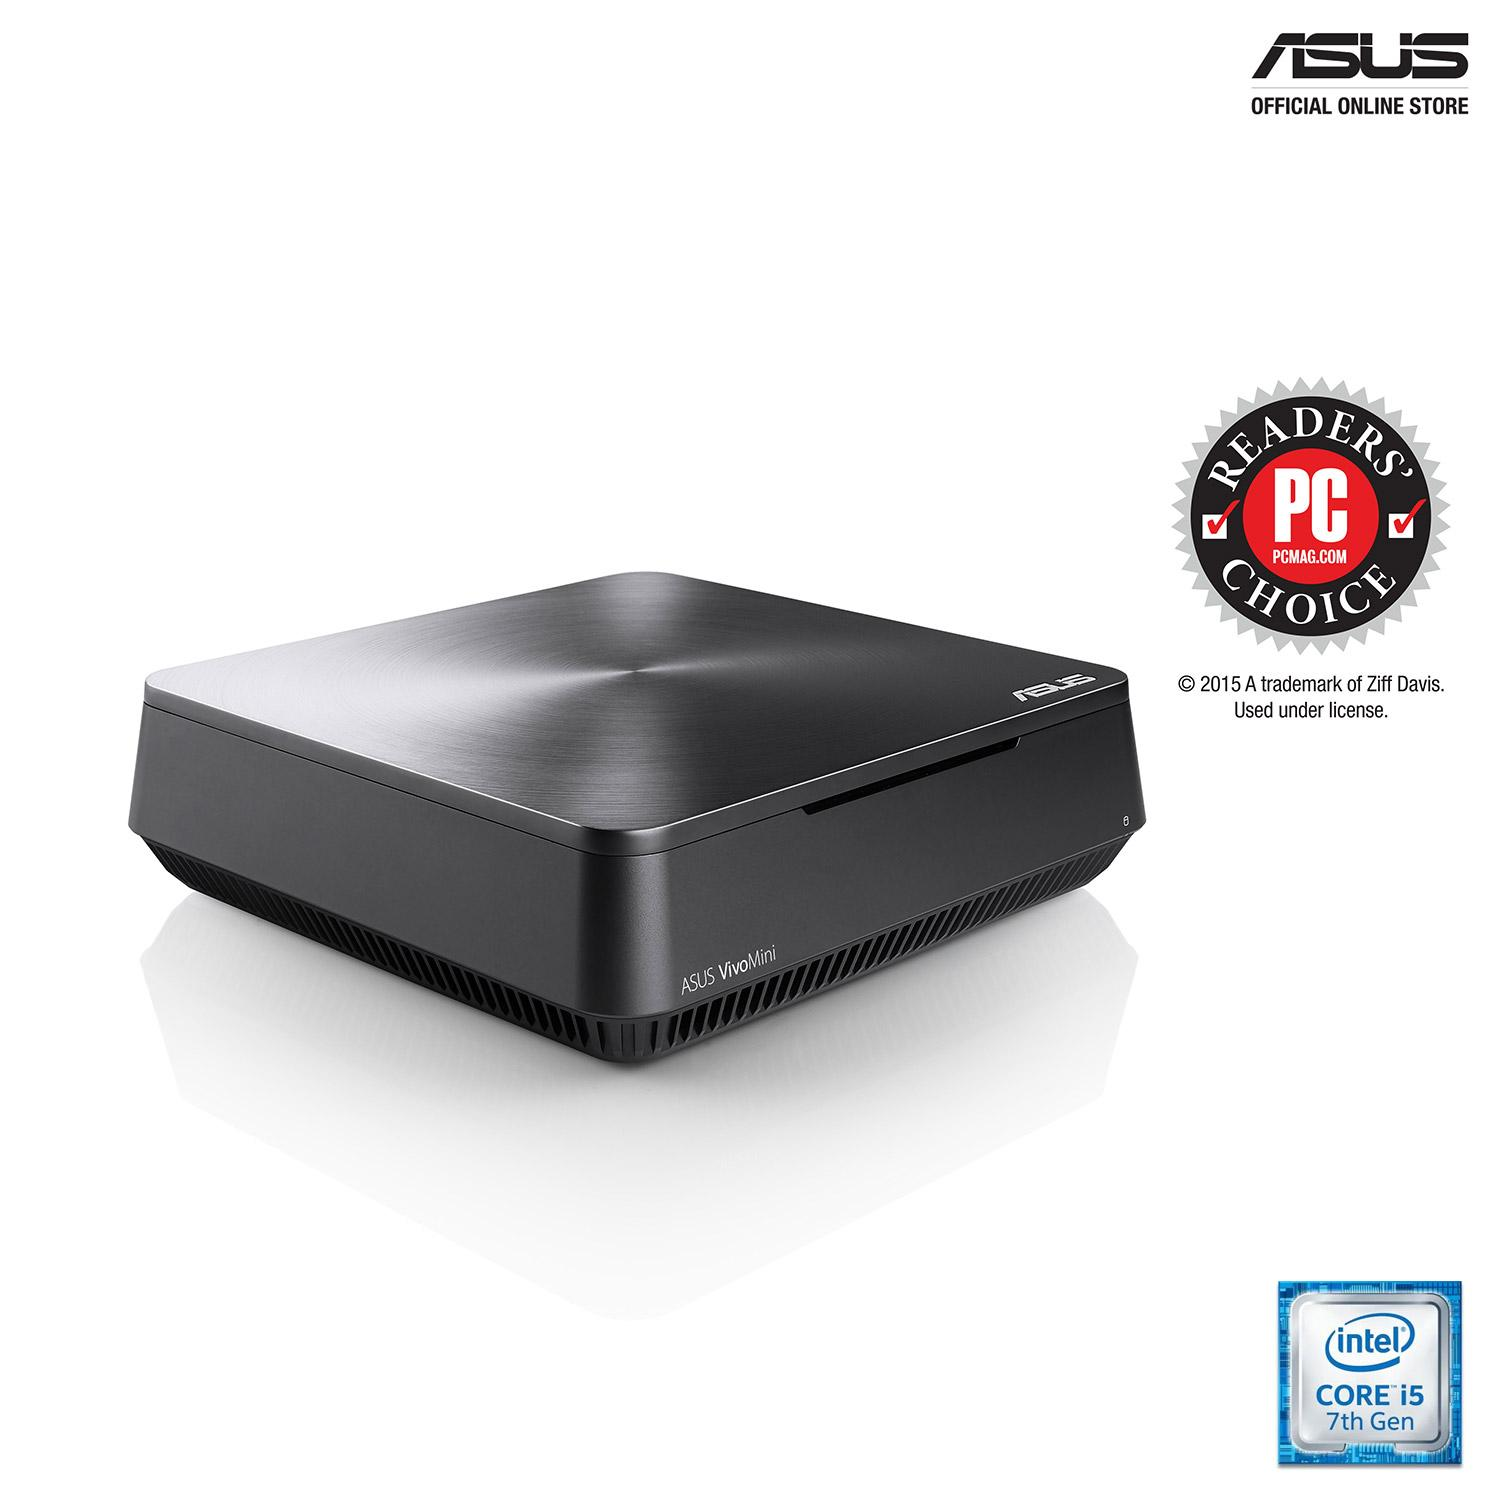 ASUS VivoMini VM65N (VM65N-G114Z) Powerful home entertainment mini PC with up to an Intel Core i5 processor, Windows 10 Home, discrete NVIDIA GeForce graphics, DDR4 RAM, 4K UHD, 802.11ac Wi-Fi and Vivo DualBay (accommodate up to two 2.5-inch SSD/HDD)